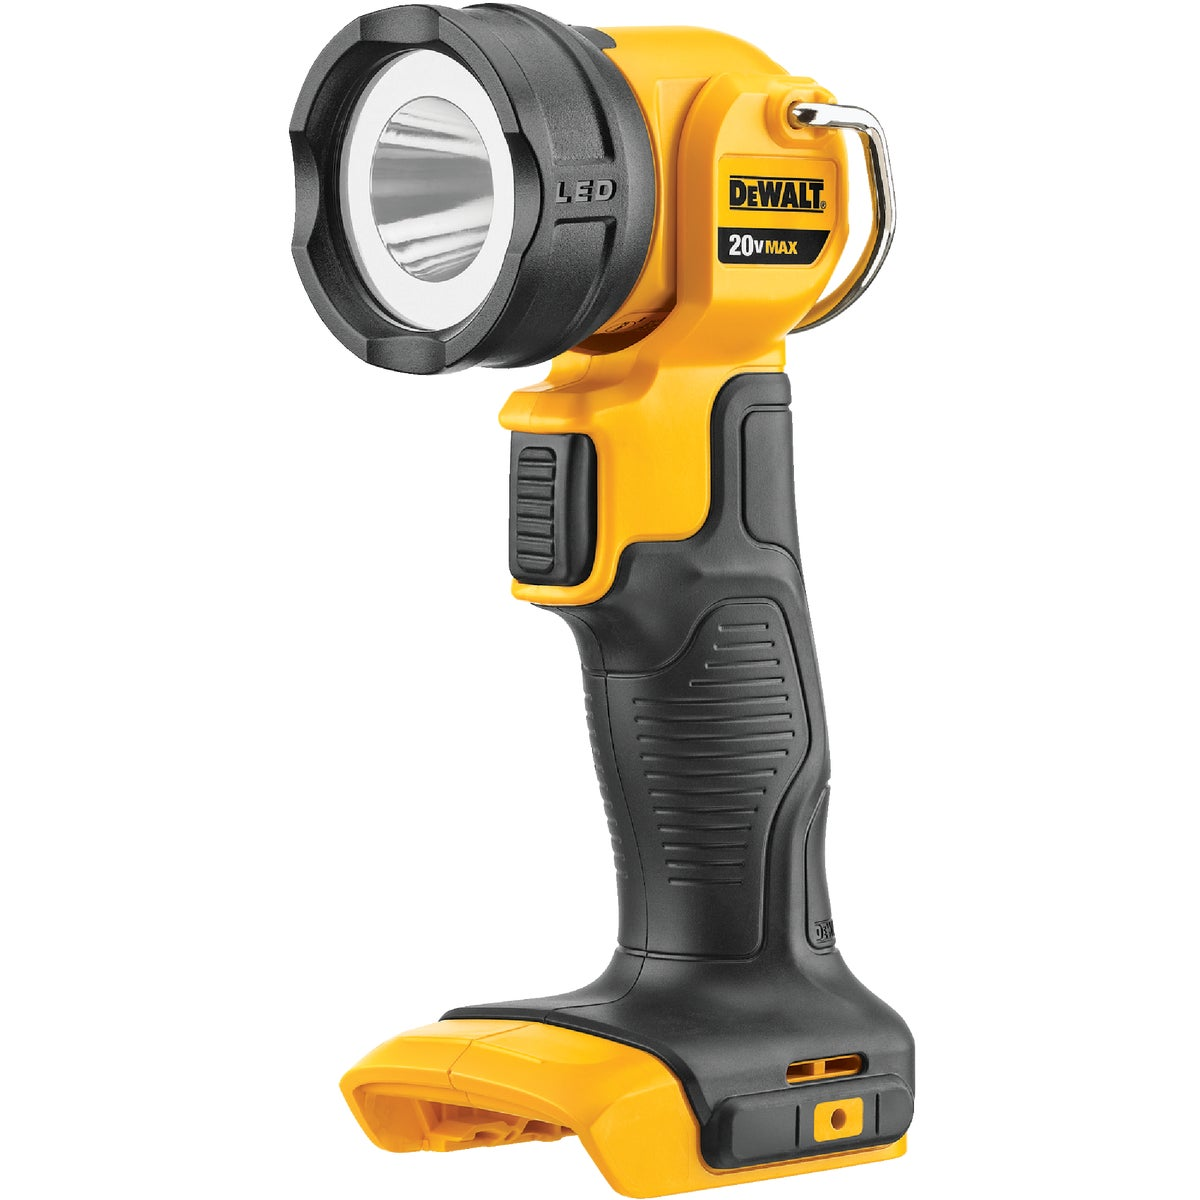 20V LED FLASHLIGHT - DCL040 by DeWalt